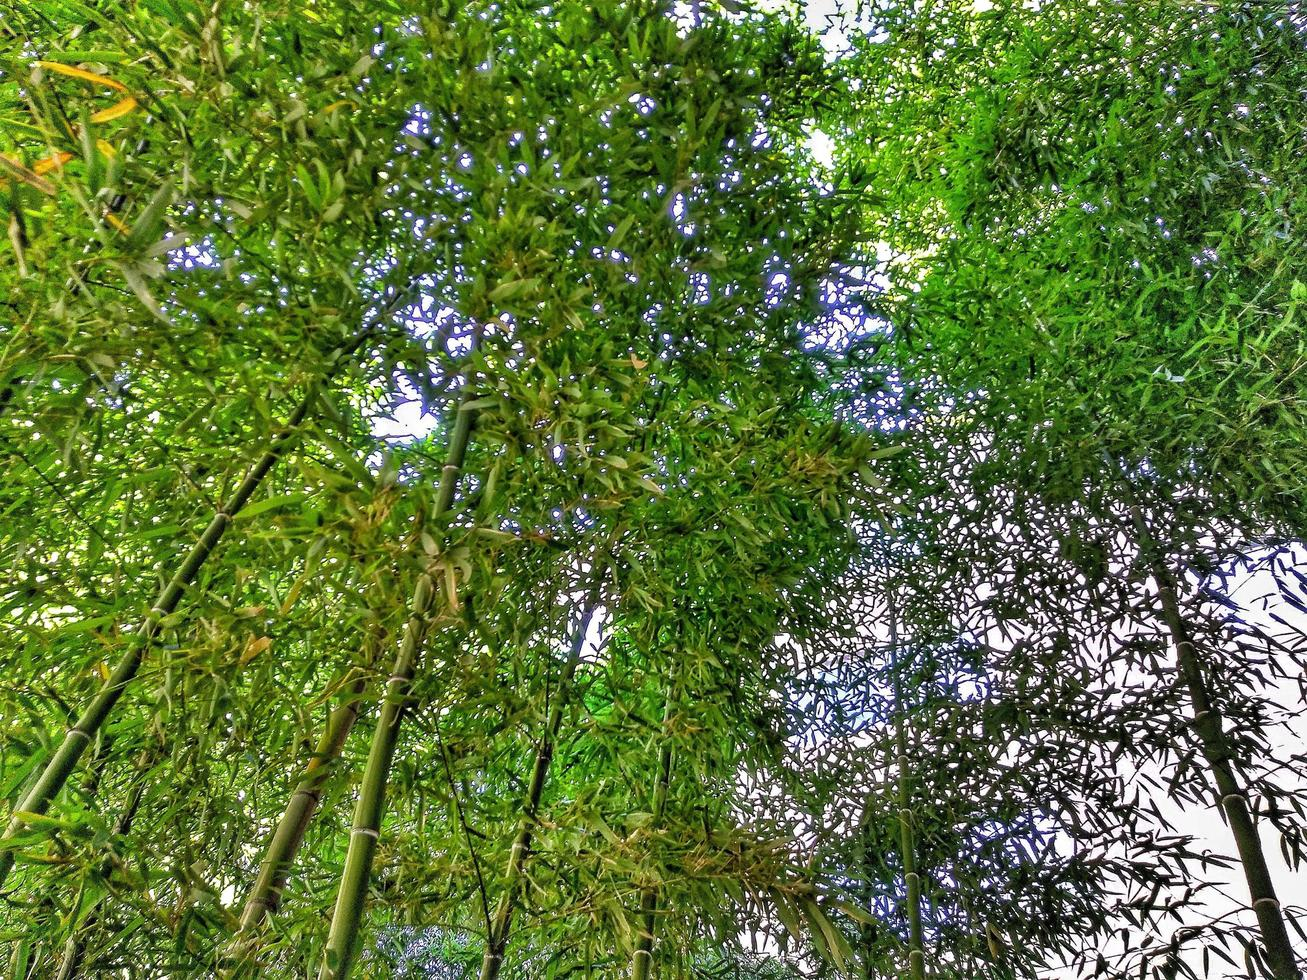 Bamboo in nature photo